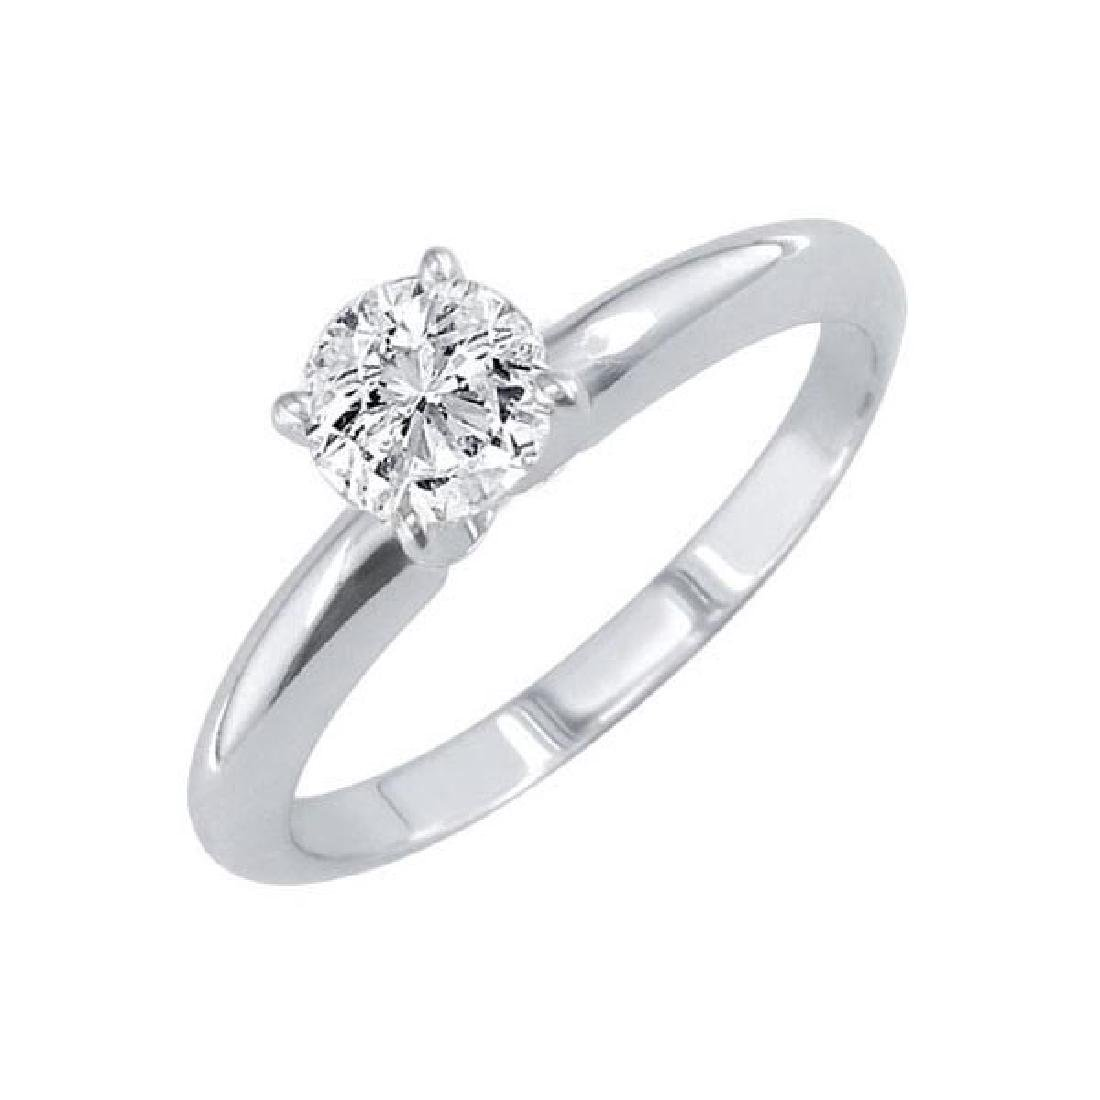 Certified 0.72 CTW Round Diamond Solitaire 14k Ring D/S